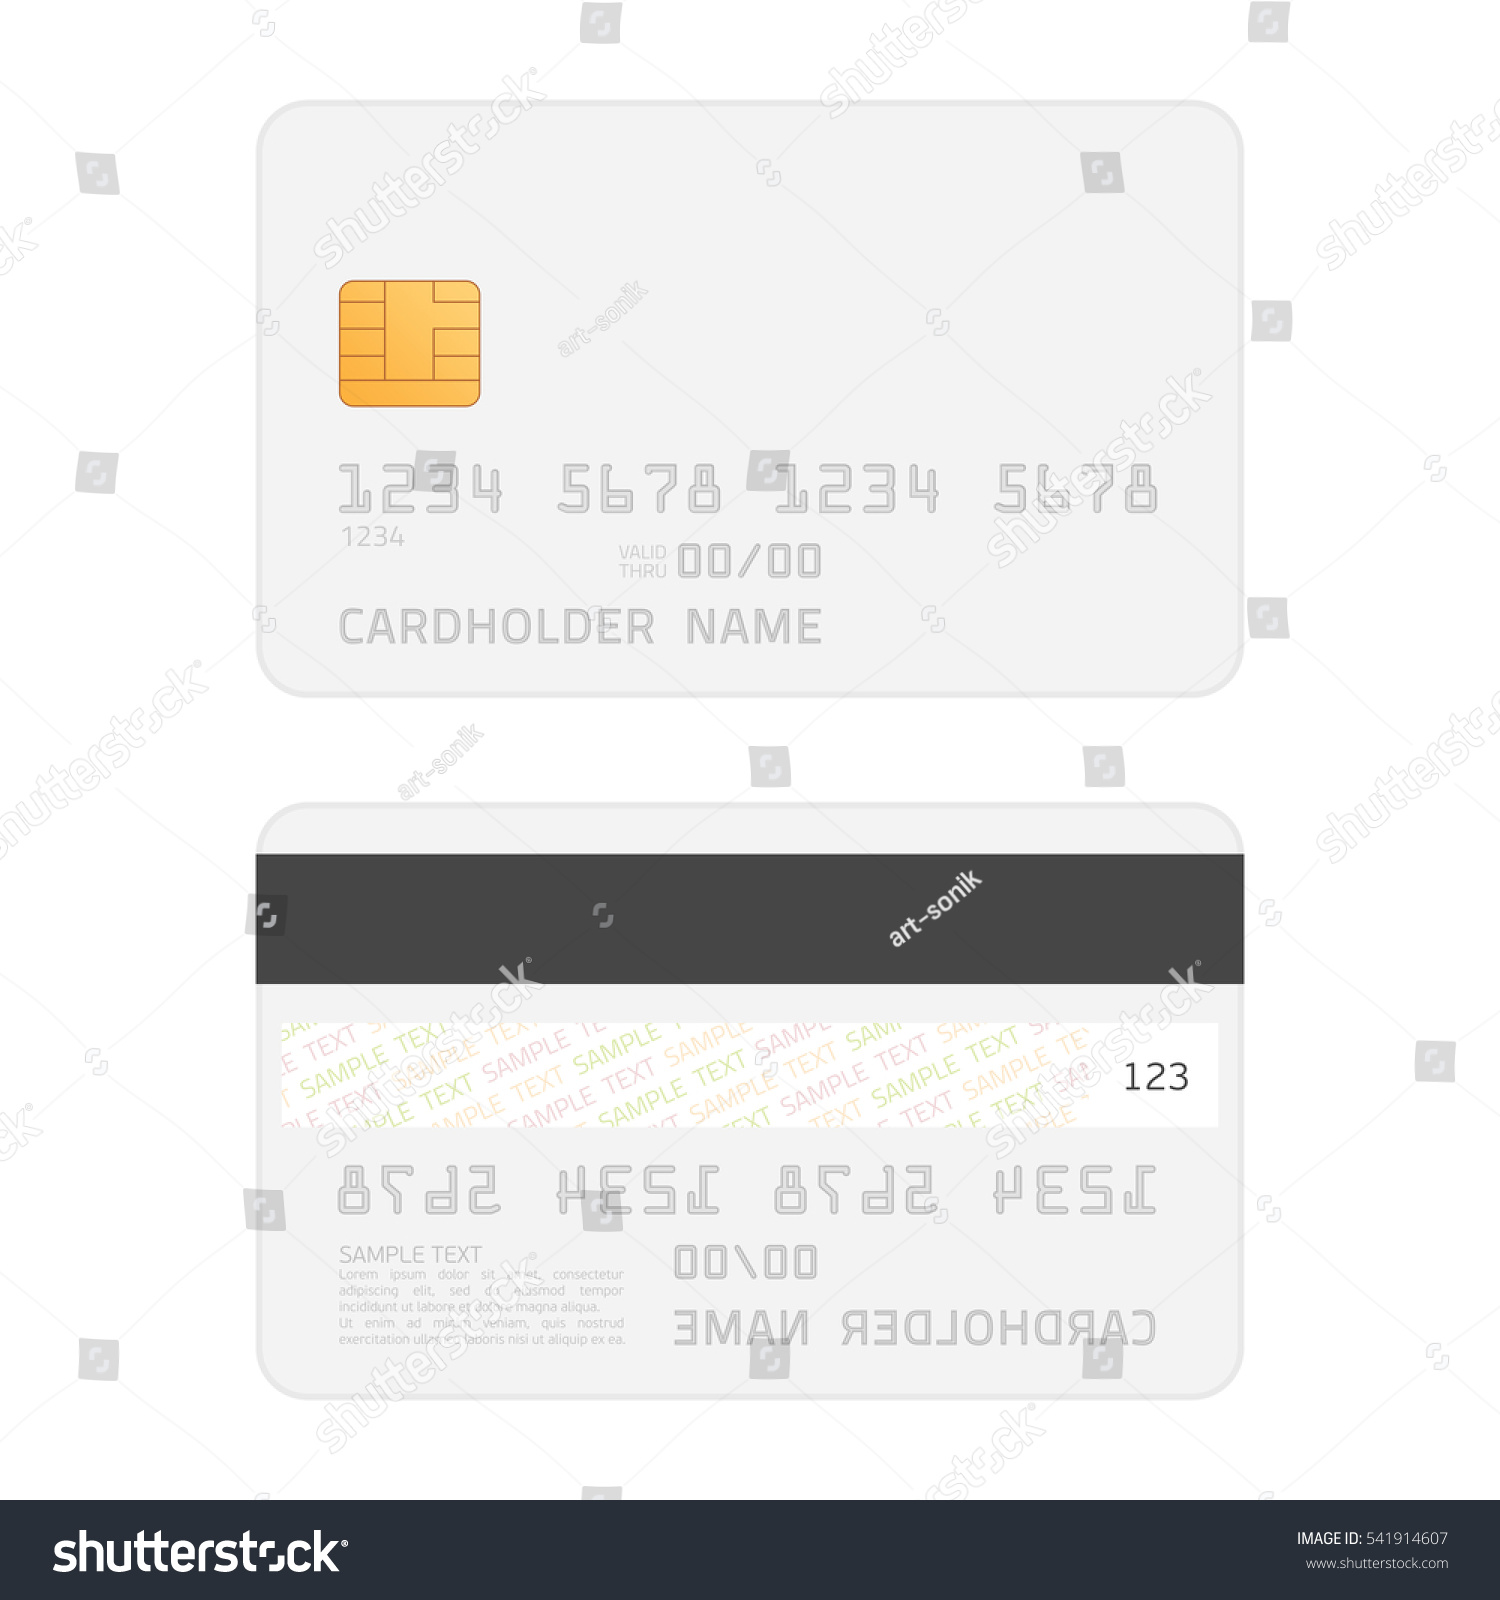 Credit Card Two Sided Realistic Mockup Stock Vector